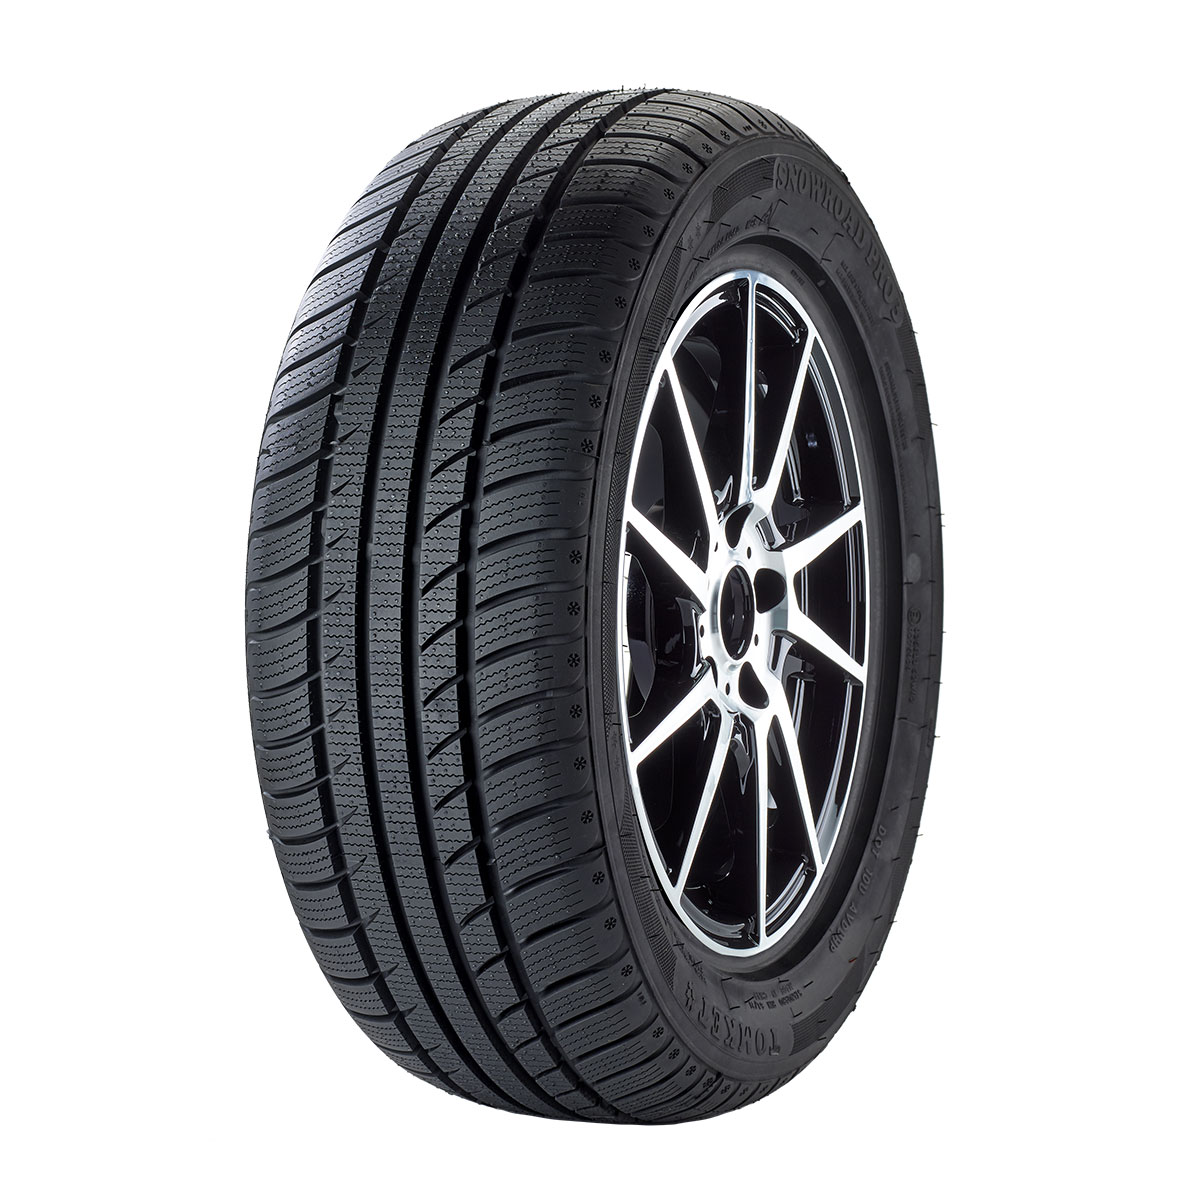 Gomme Nuove Tomket 195/55 R16 87H SNOWROAD PRO 3 M+S pneumatici nuovi Invernale